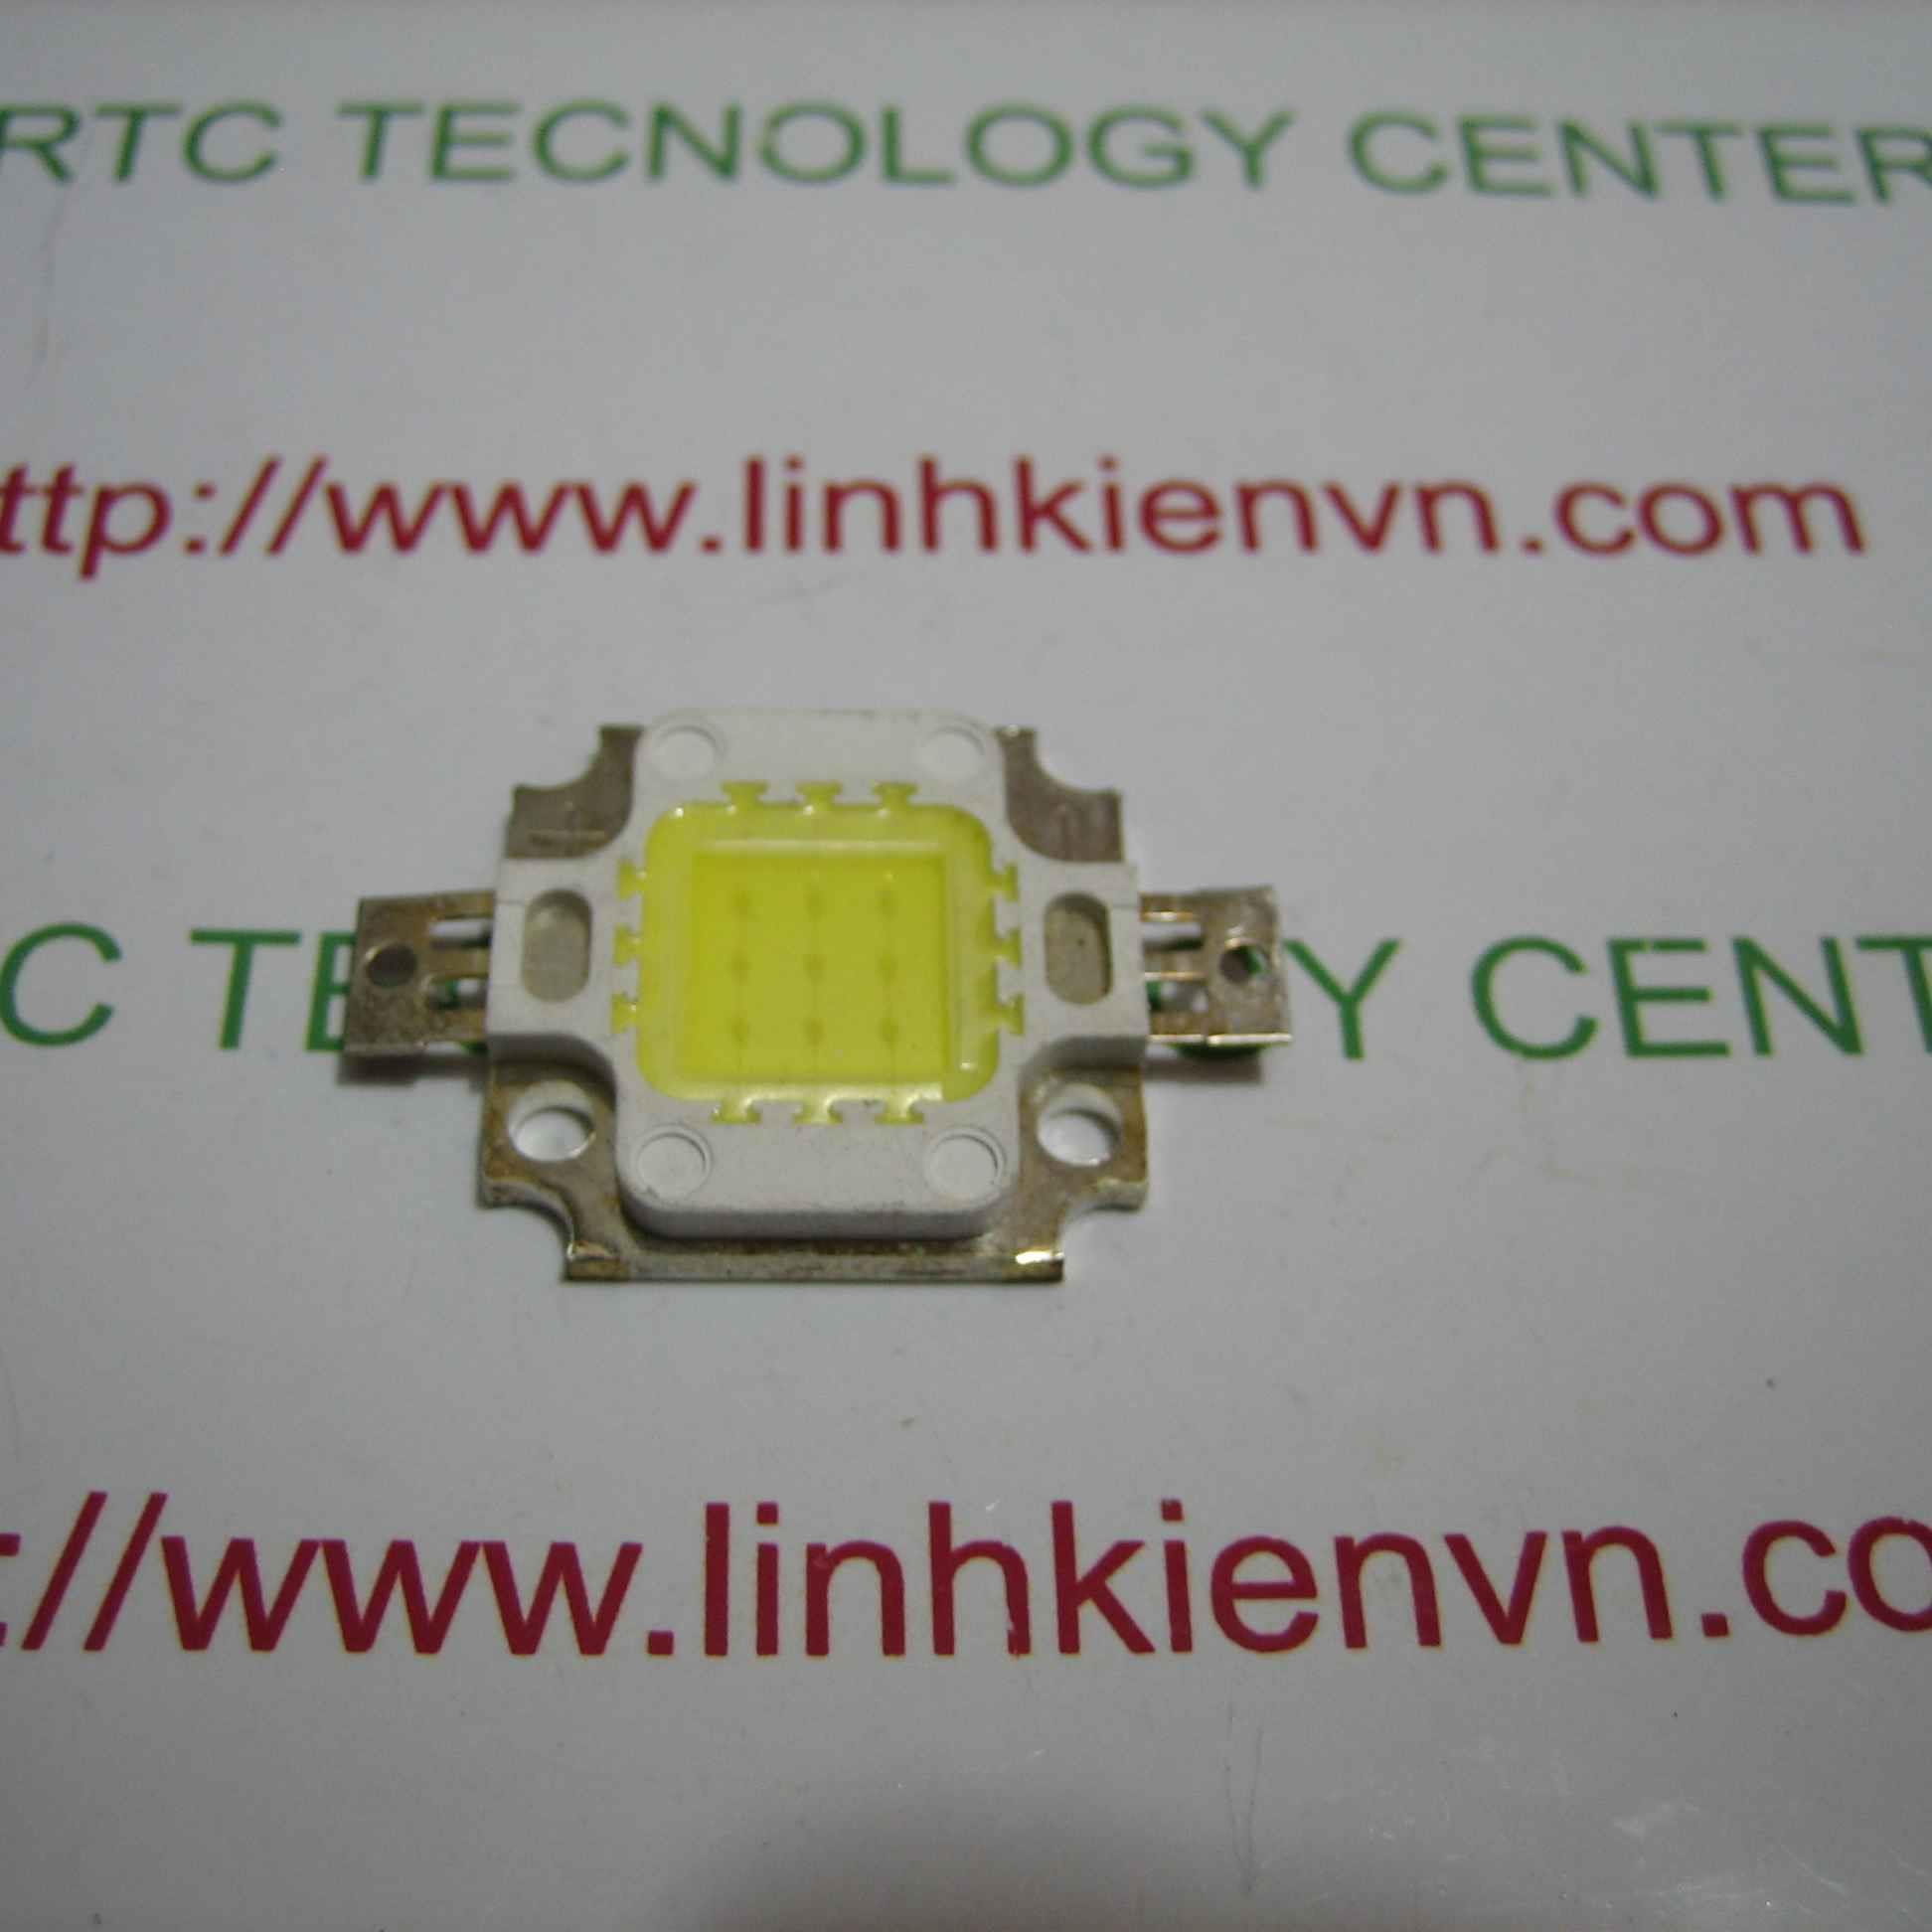 Led Luxeon 10W trắng sáng - G6H6